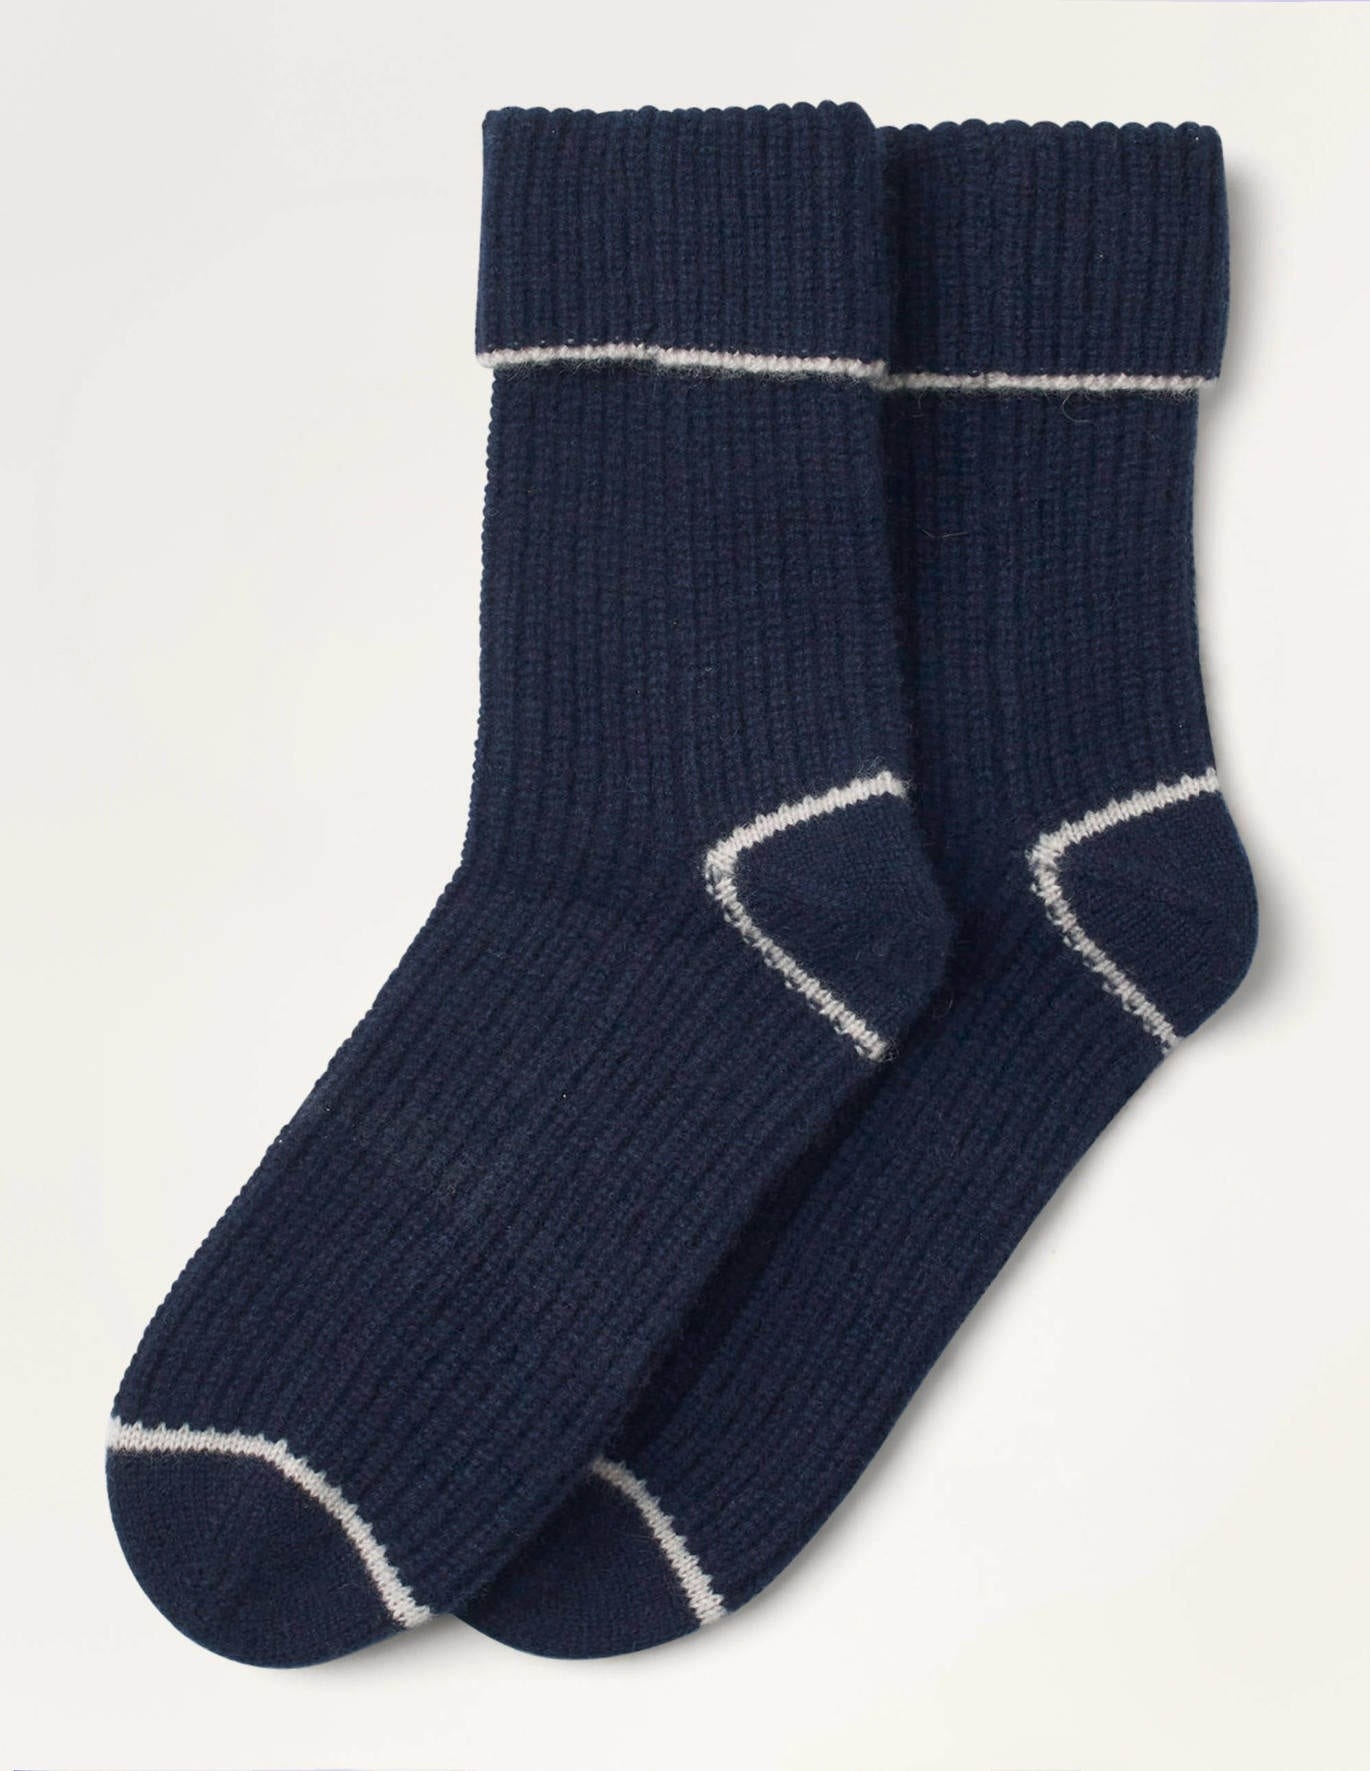 The navy socks with white trim